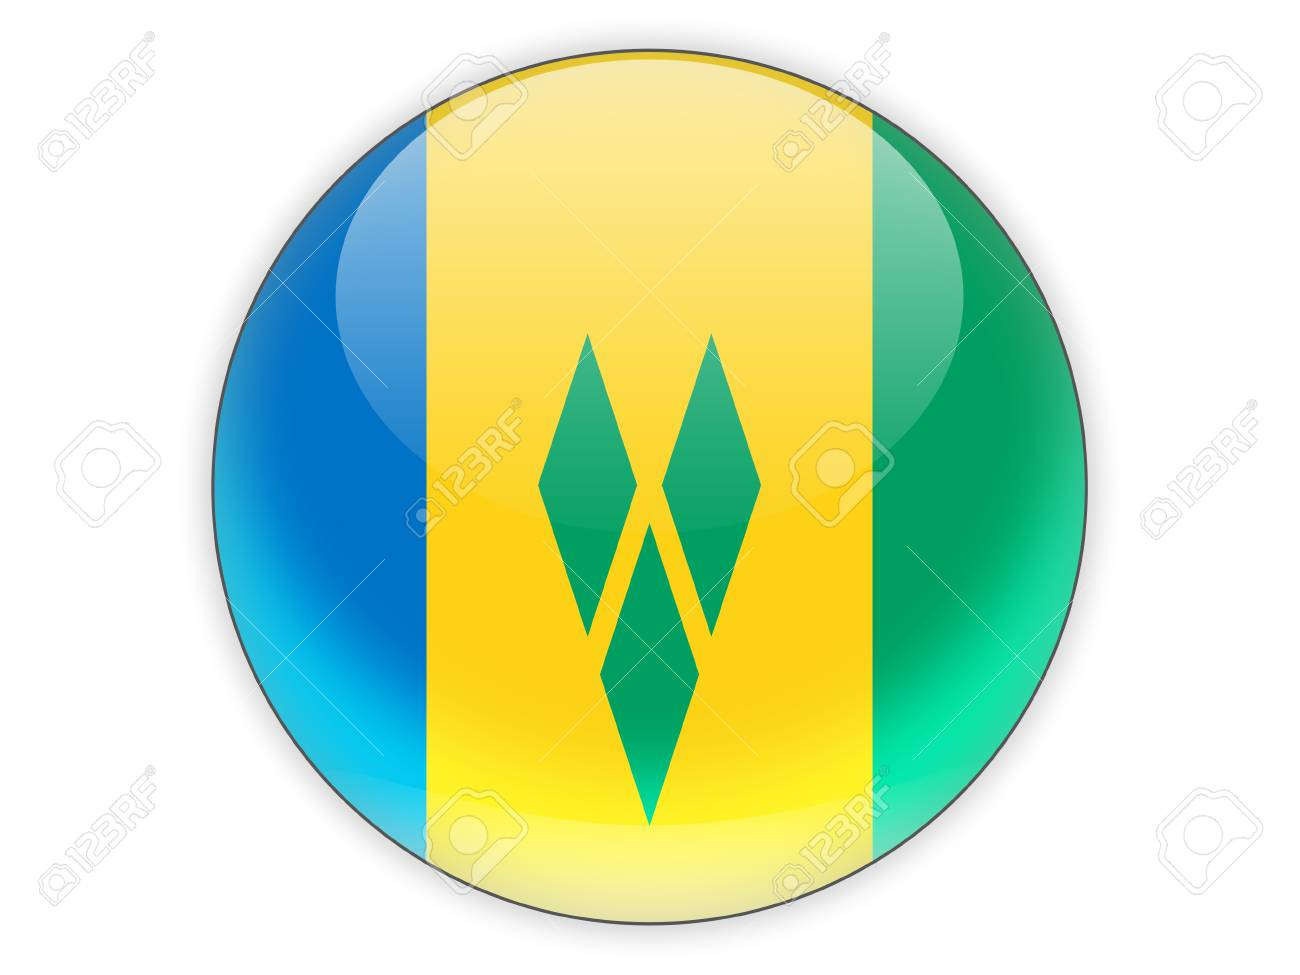 Round icon with flag of saint vincent and the grenadines isolated